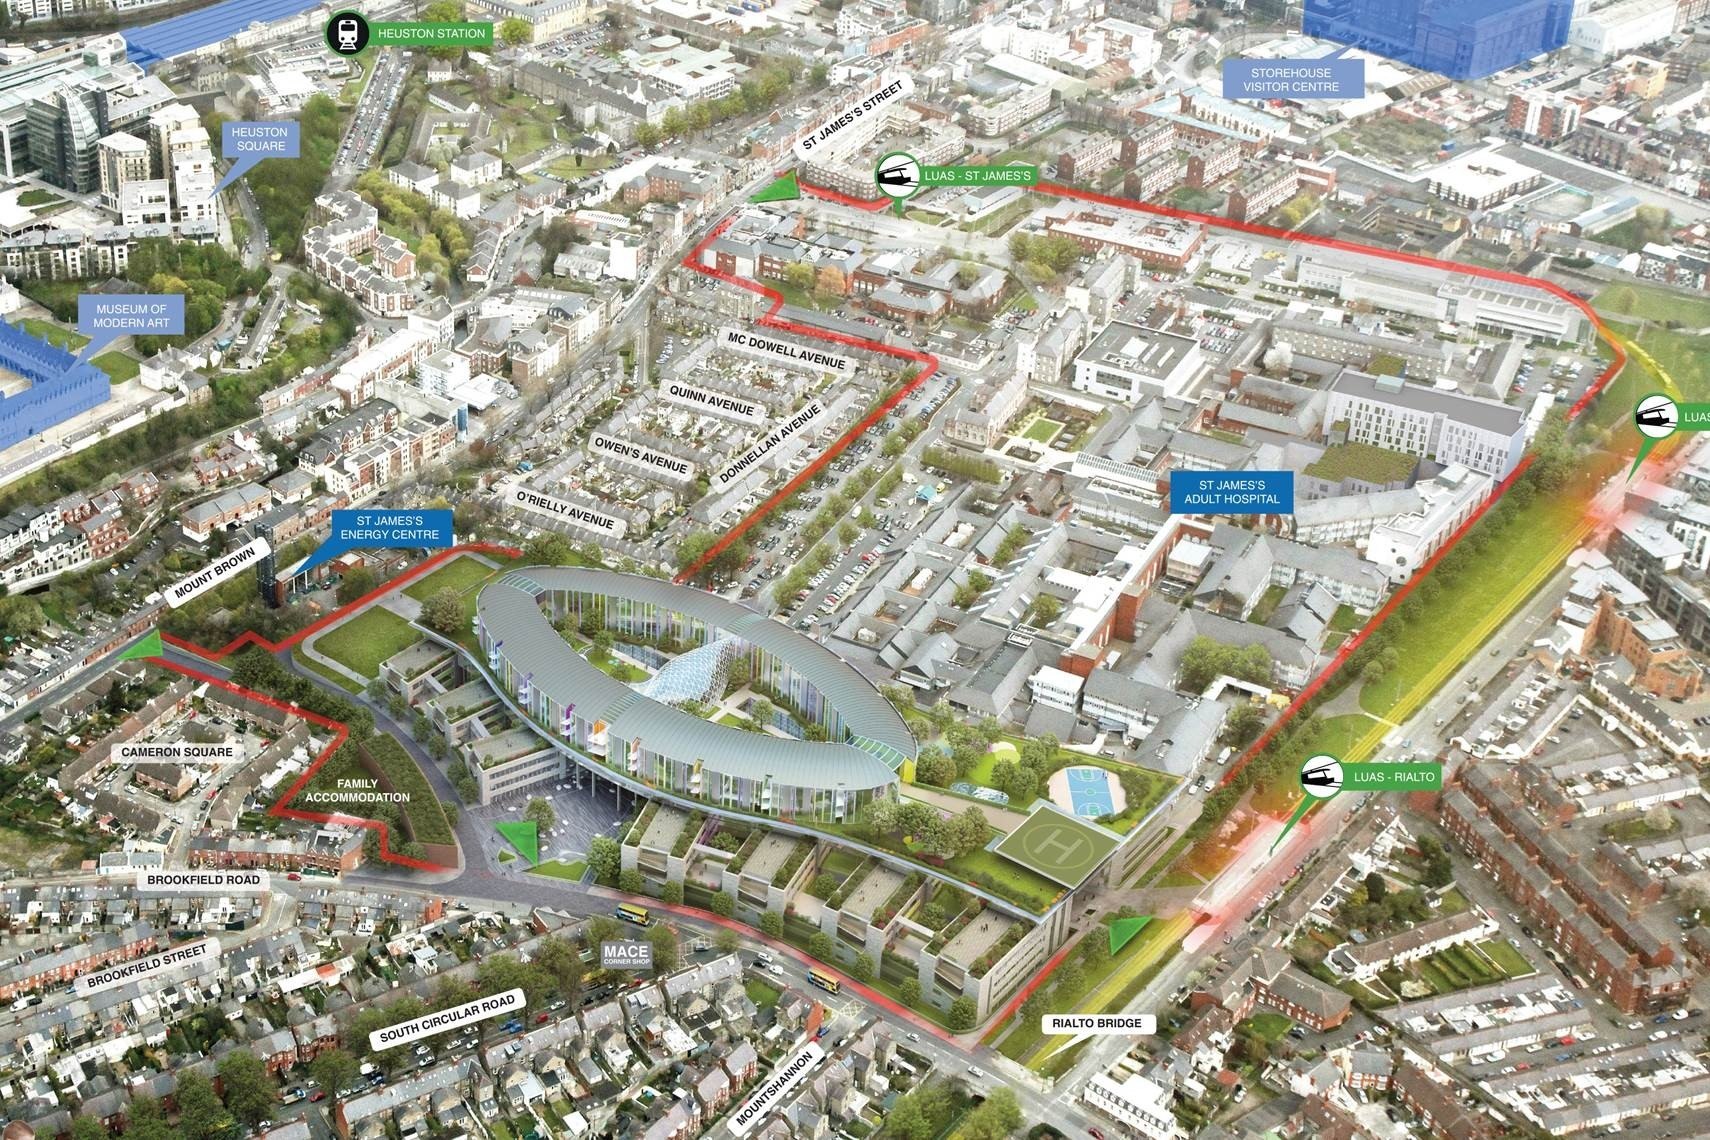 Overview of the planned Development